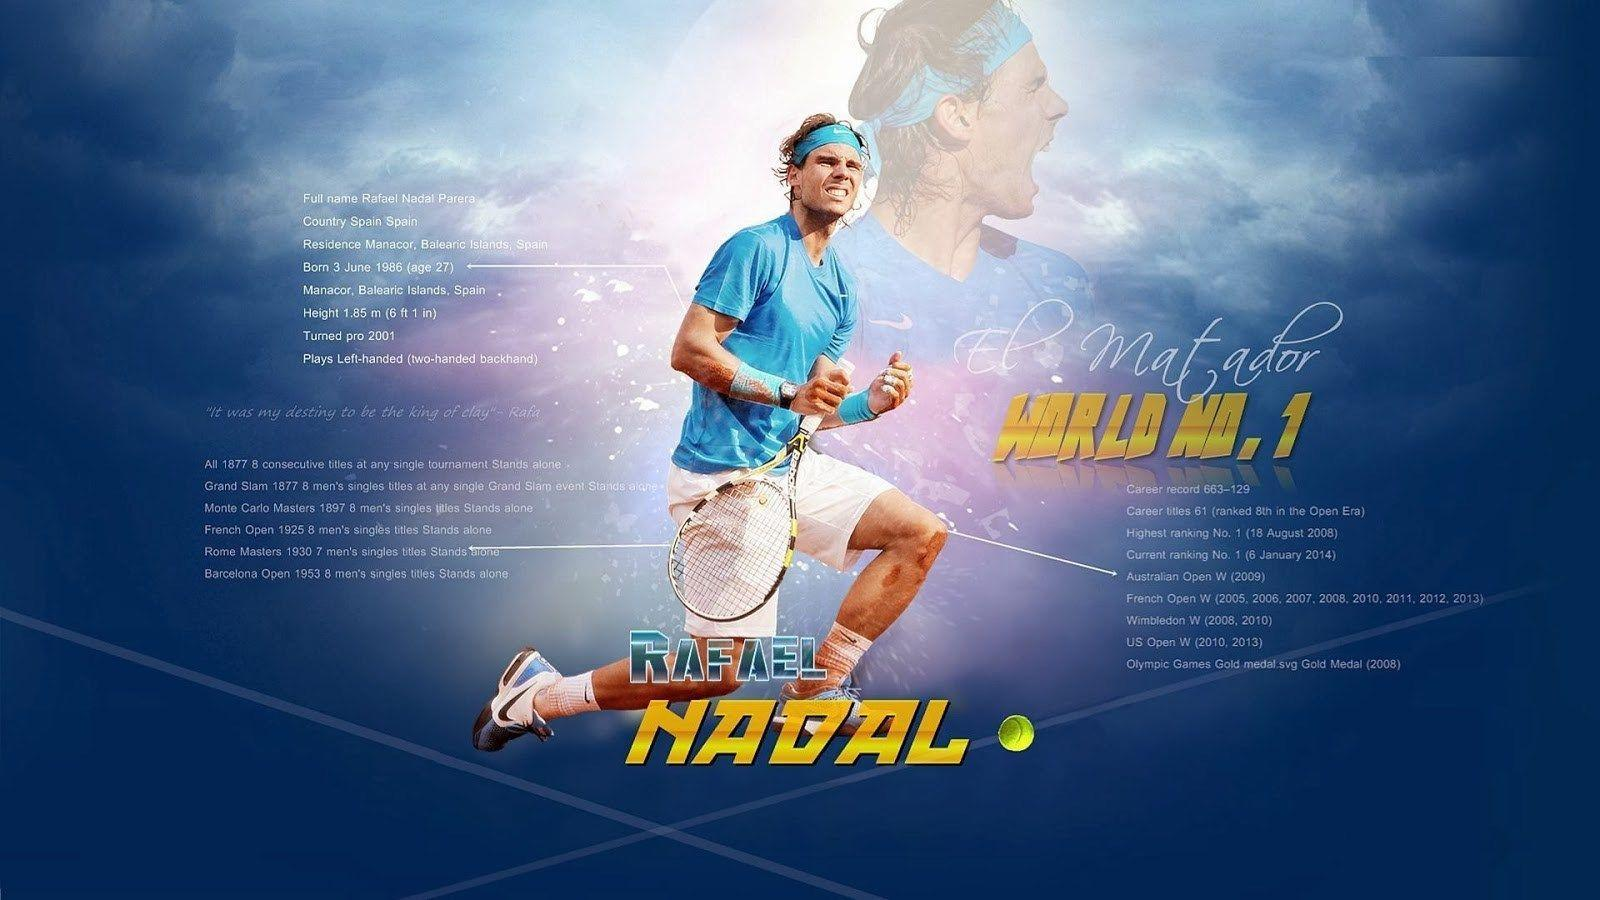 rafael nadal full hd wallpapers » Wallppapers Gallery